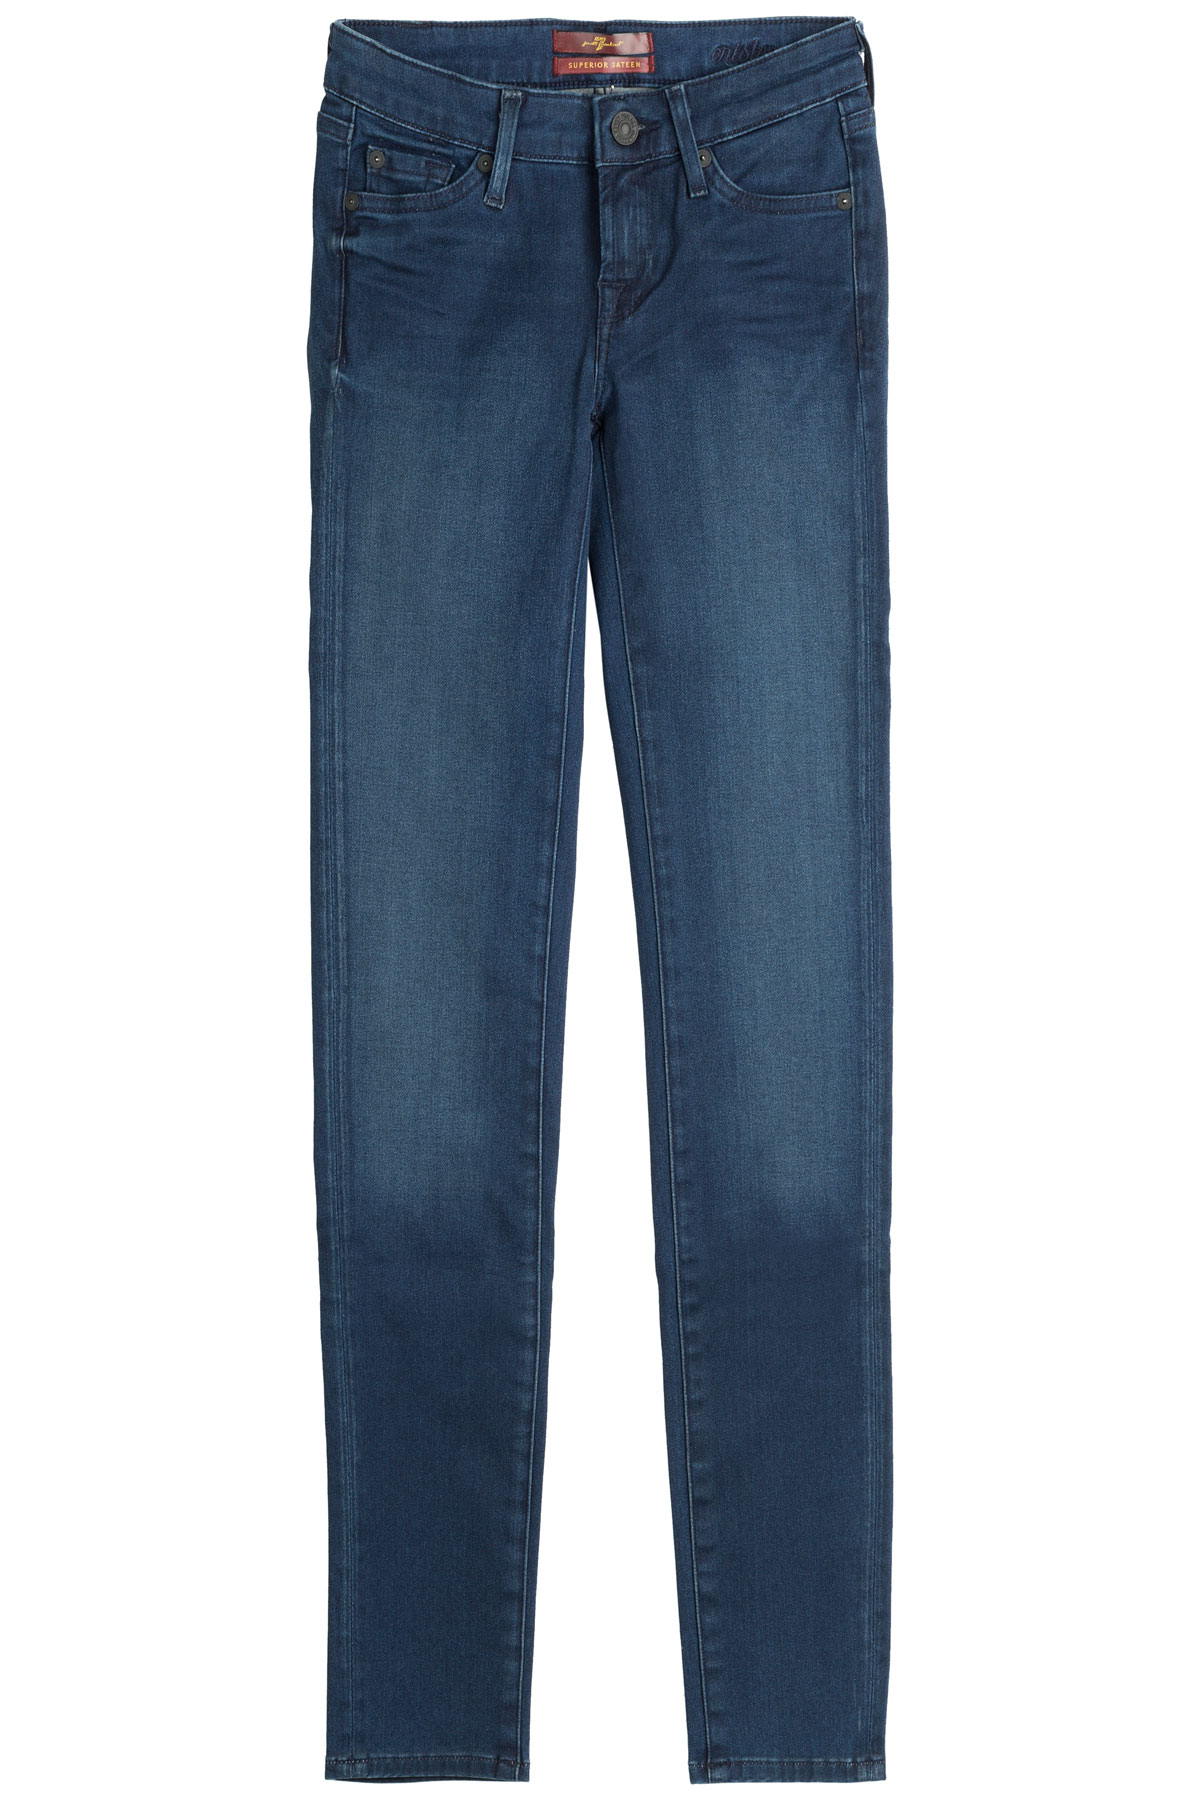 7 for all mankind stretch cotton skinny jeans in blue lyst. Black Bedroom Furniture Sets. Home Design Ideas